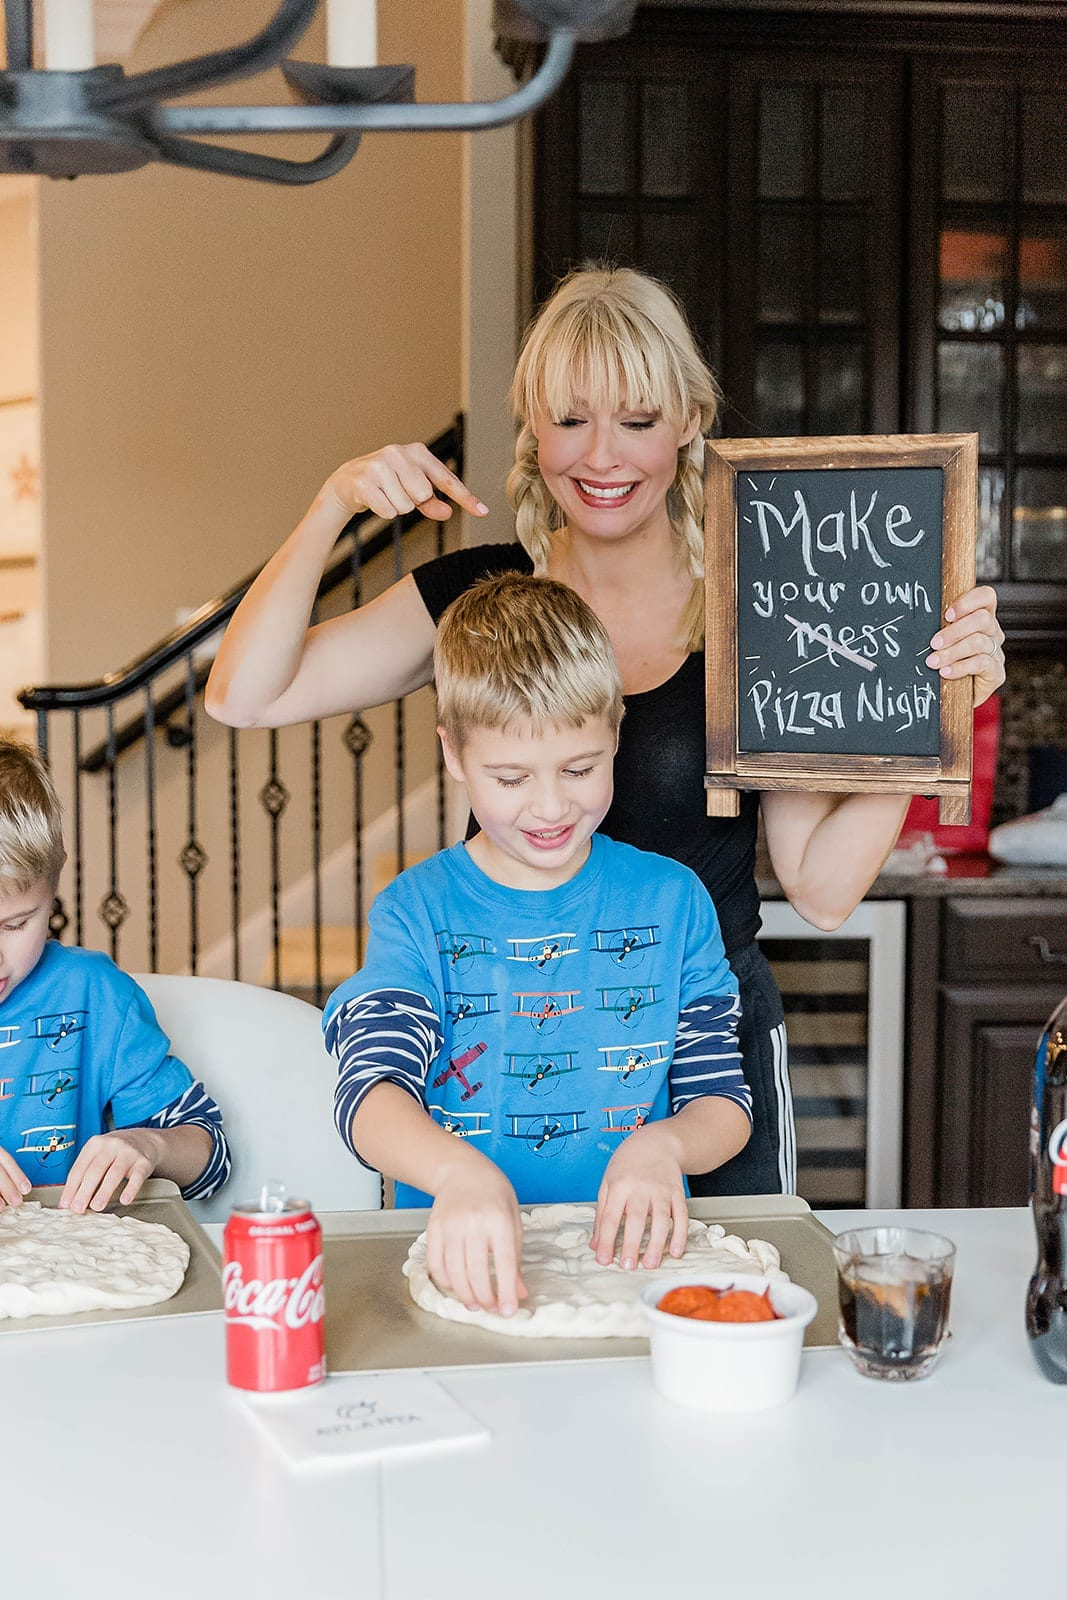 Best pre made pizza dough for make your own pizza night with the kids!